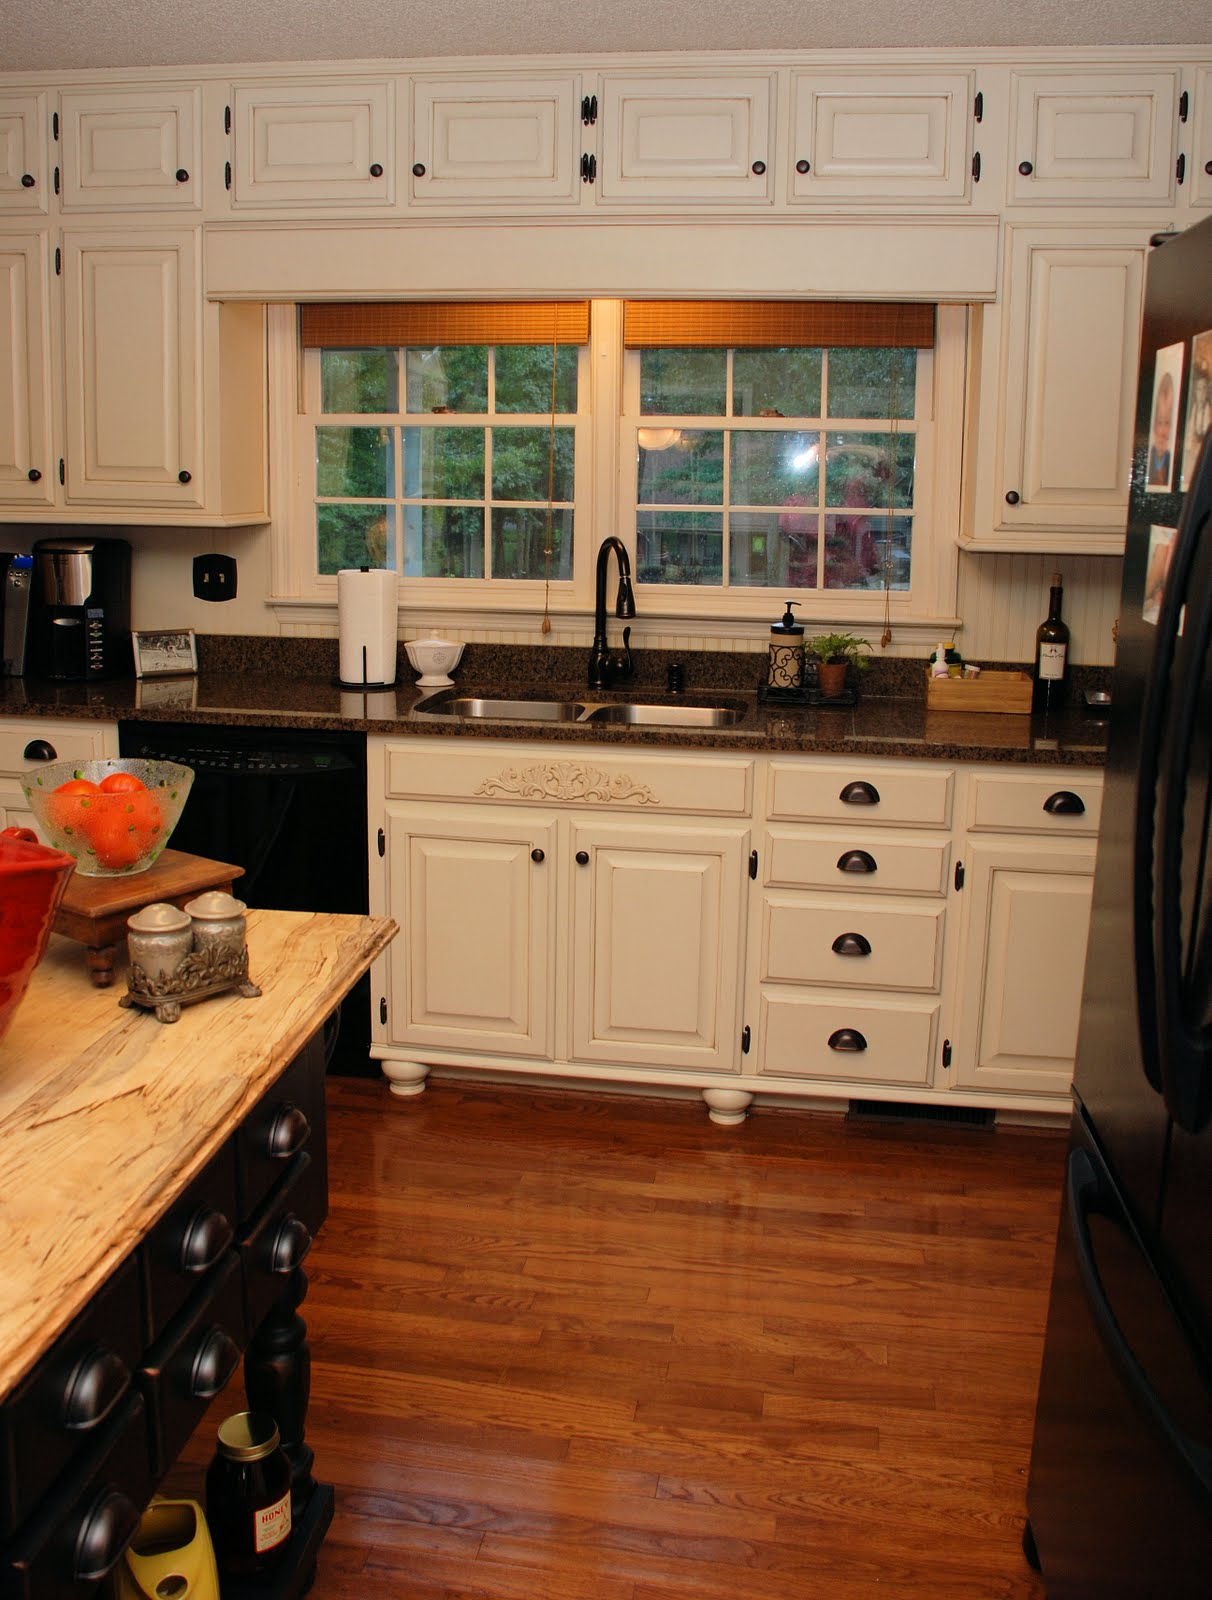 Remodelaholic | From Oak Kitchen Cabinets to Painted White Cabinets